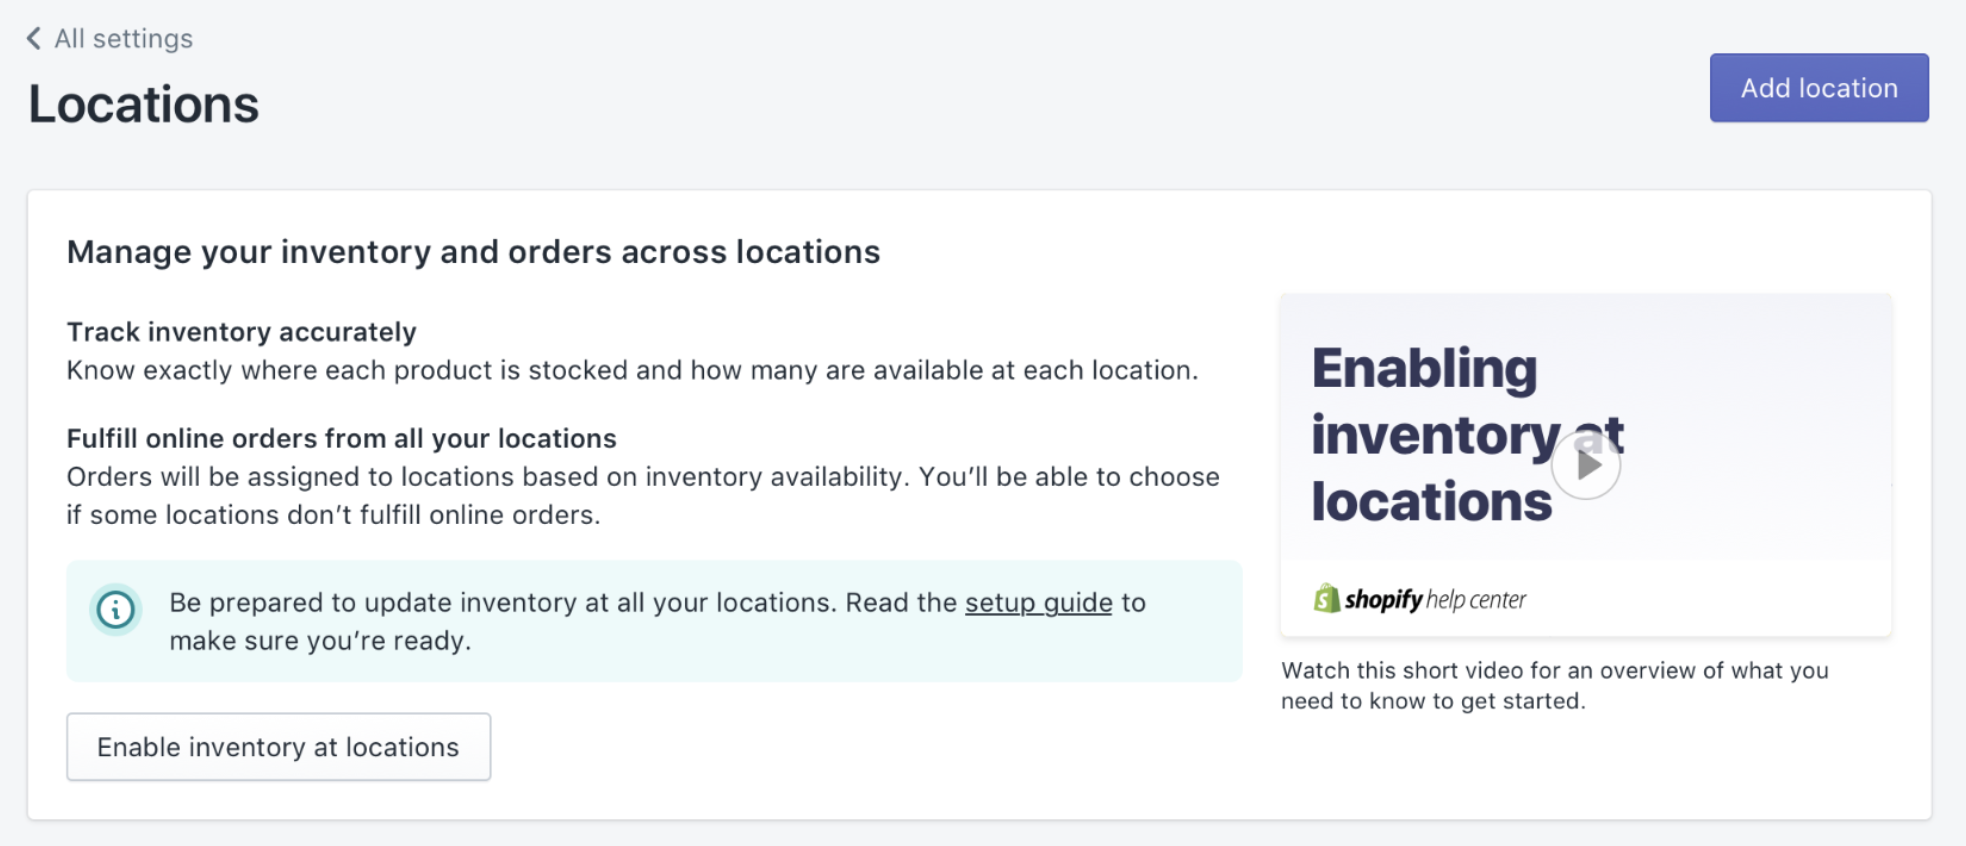 Notification the Locations page that locations aren't enabled